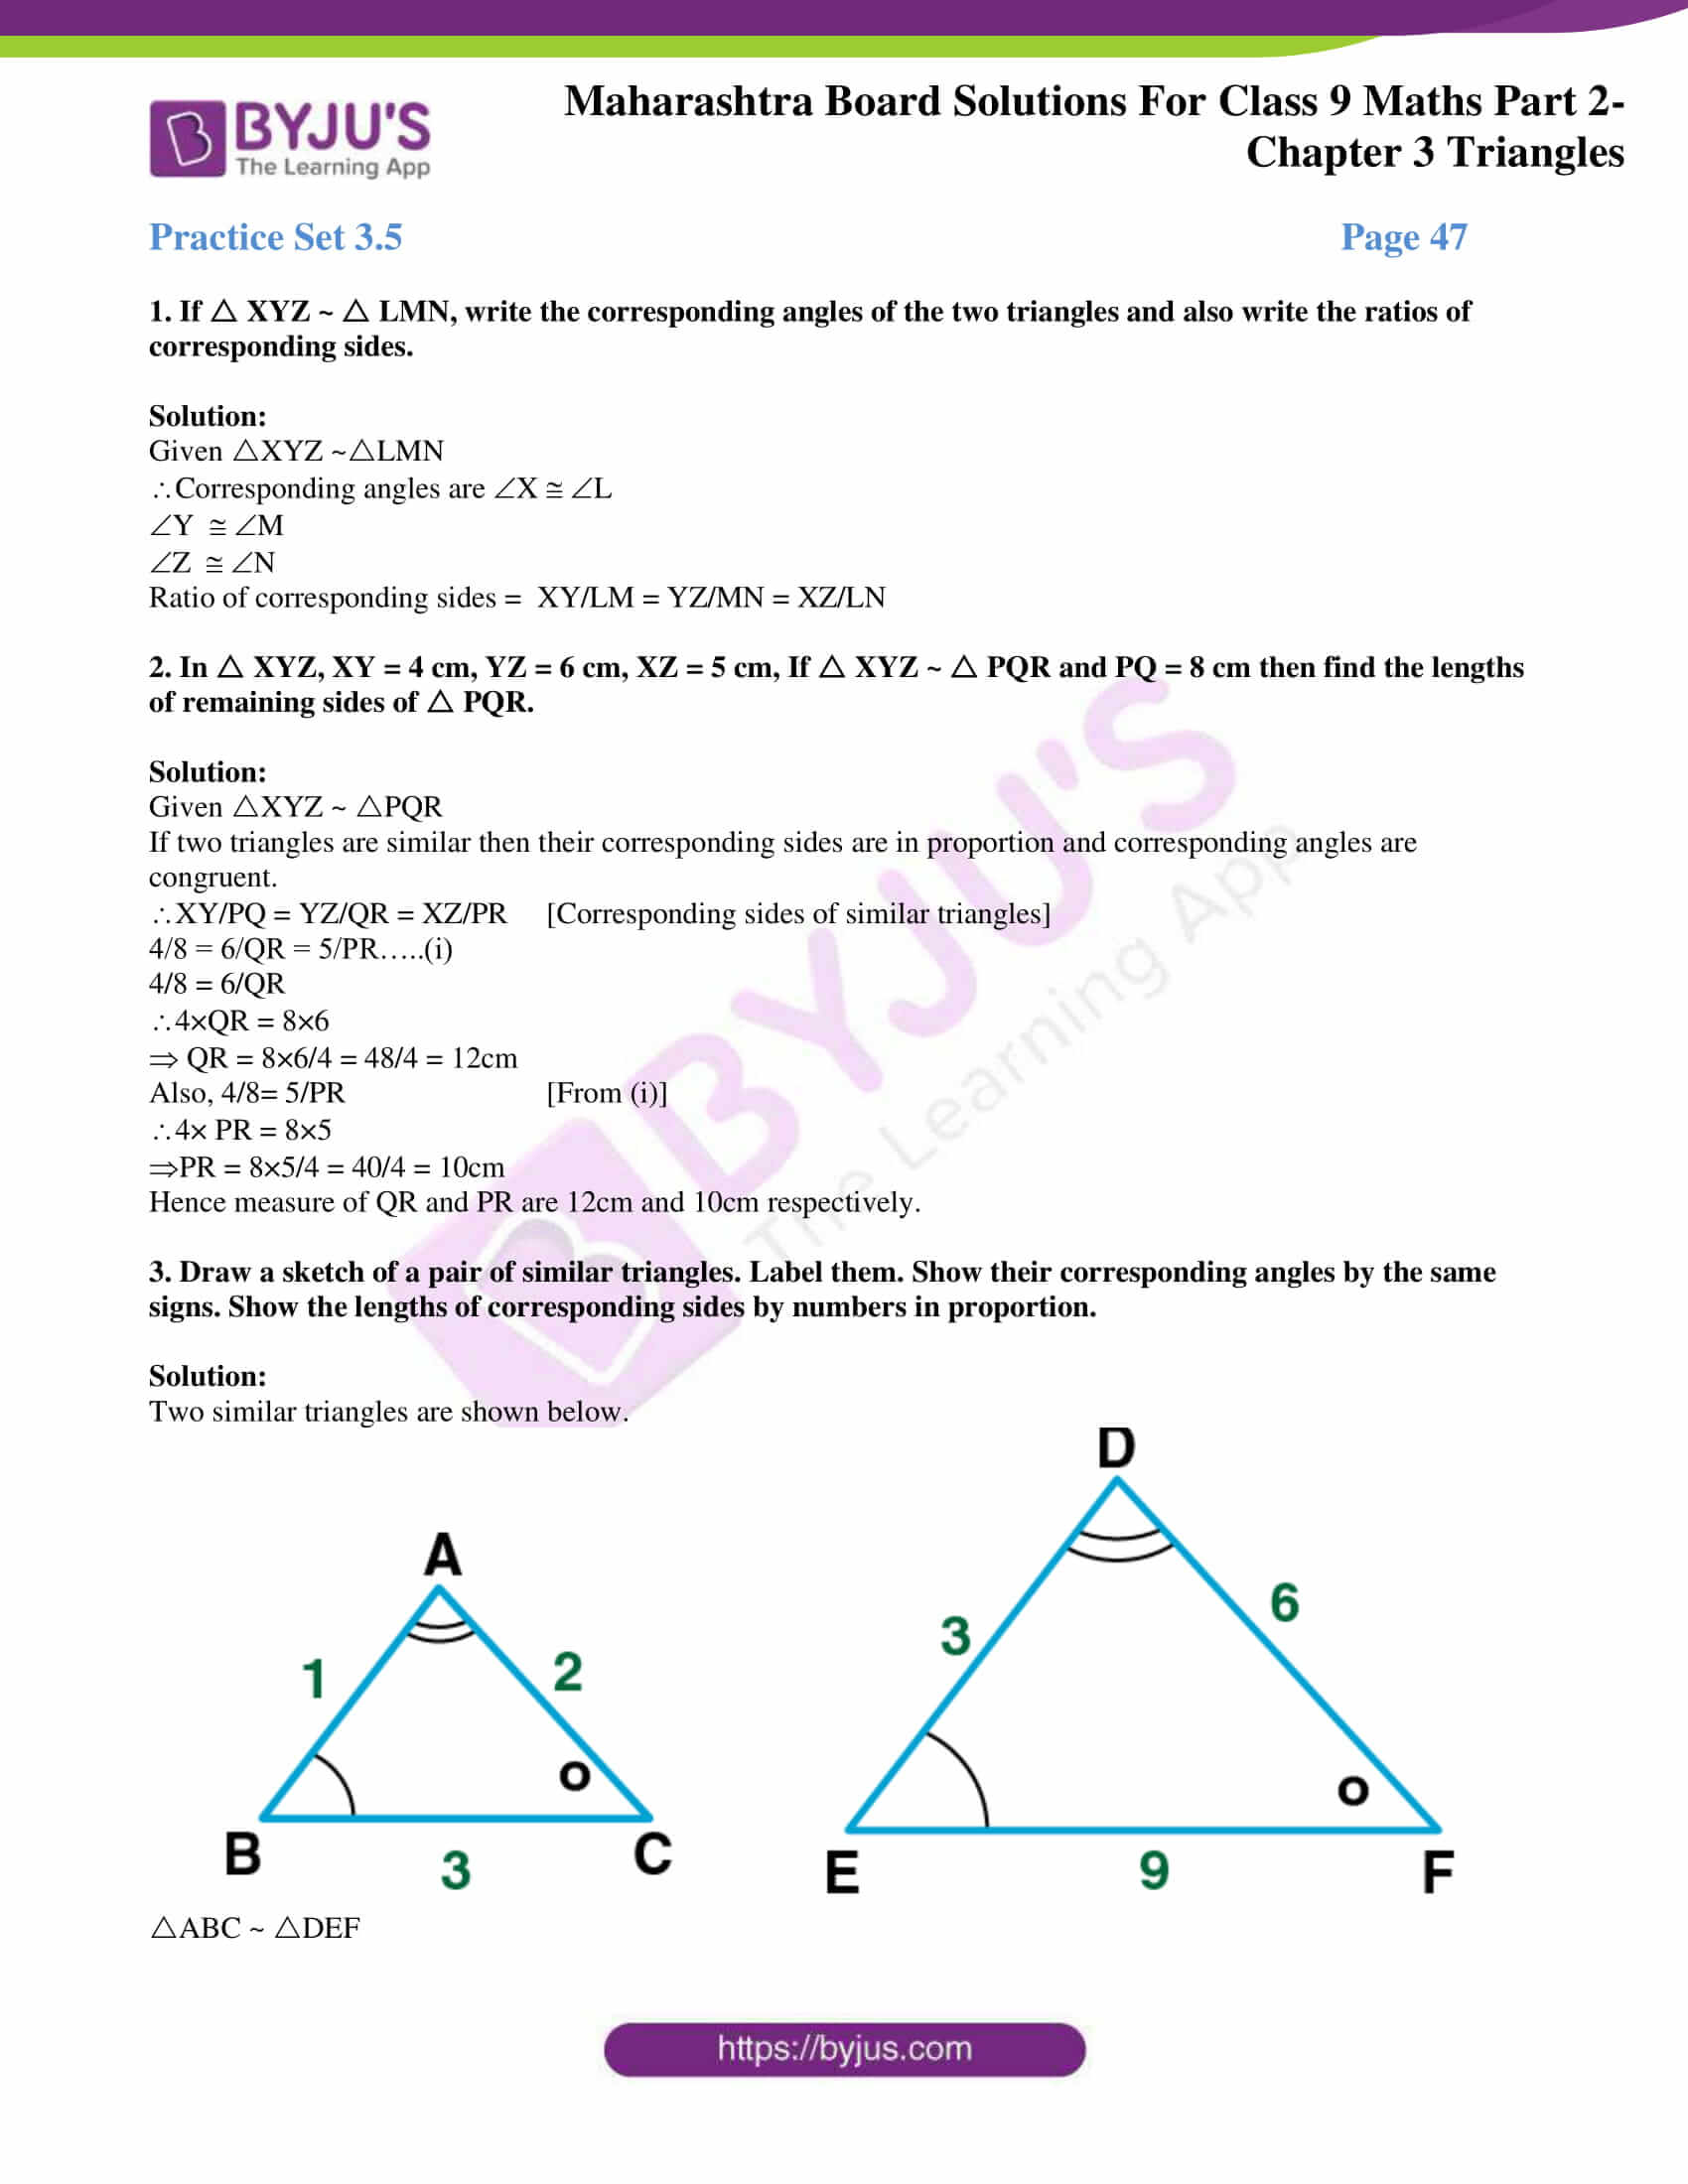 msbshse solutions for class 9 maths part 2 chapter 3 19